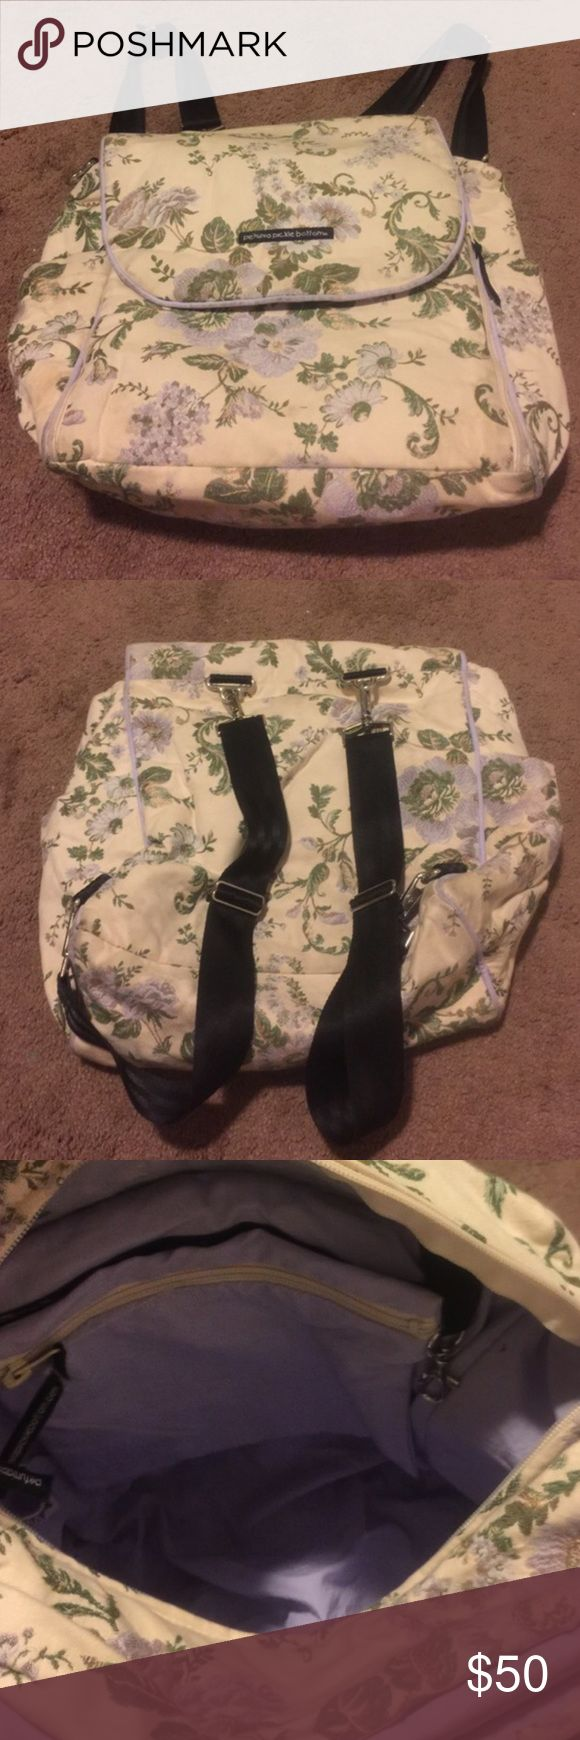 Petunia Pickle Bottom Backpack Petunia Pickle Bottom baby backpack. Comes with changing pad Petunia Pickle Bottom Bags Baby Bags